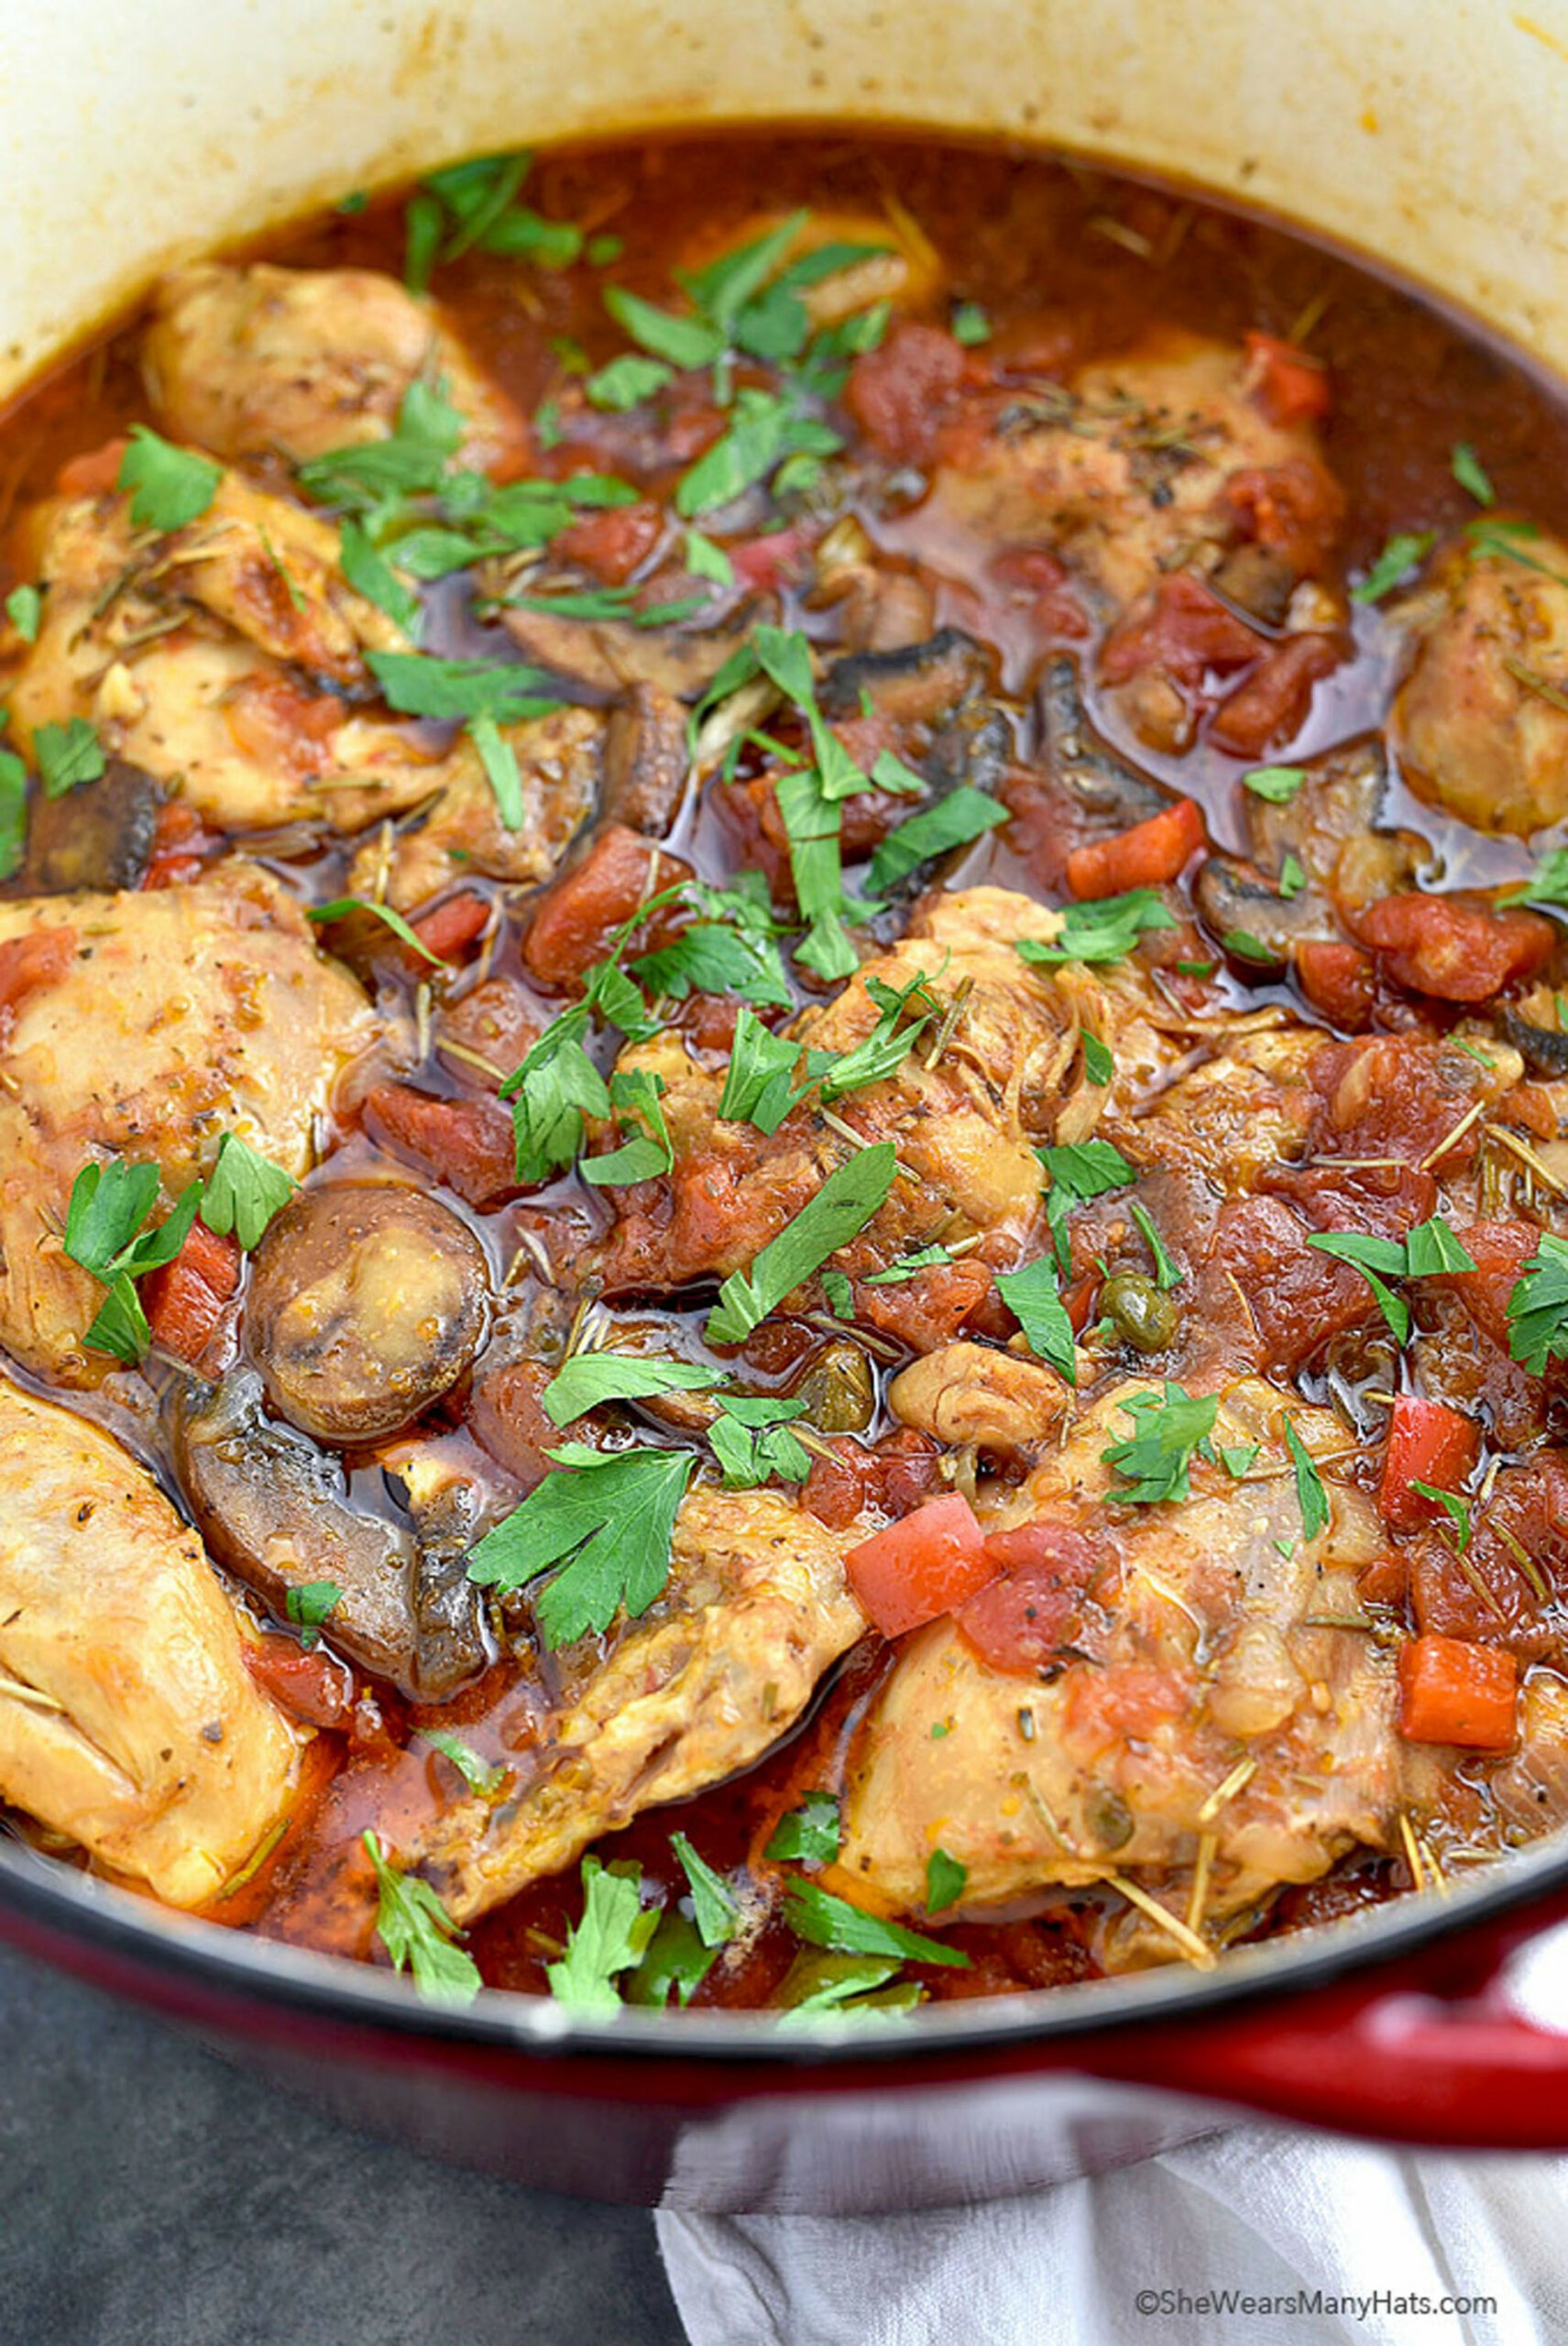 12 Delicious Dutch Oven Chicken Recipes - How to Make ..